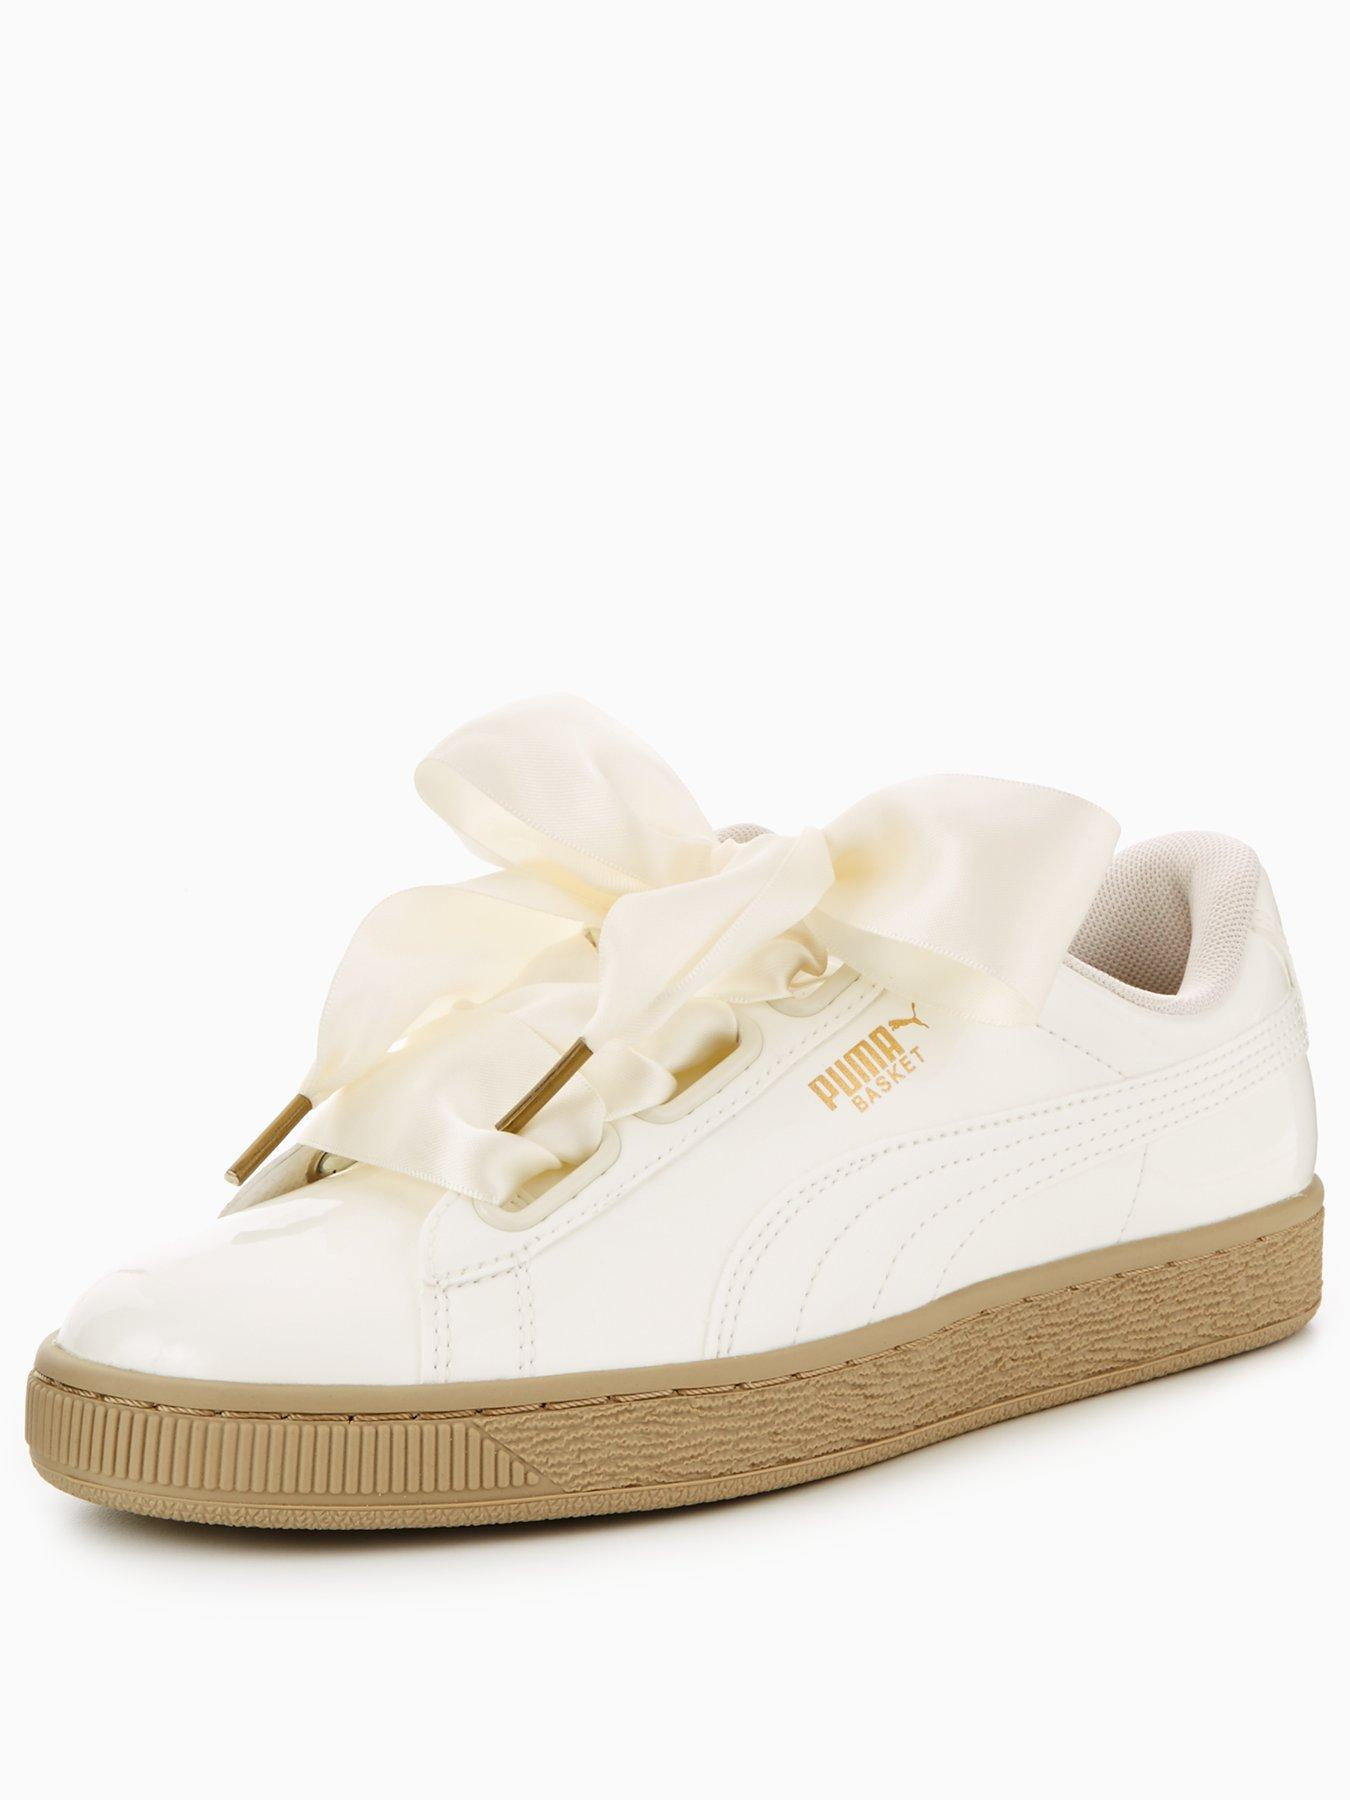 Puma Basket Heart Patent White 1600167528 Women's Shoes Puma Trainers